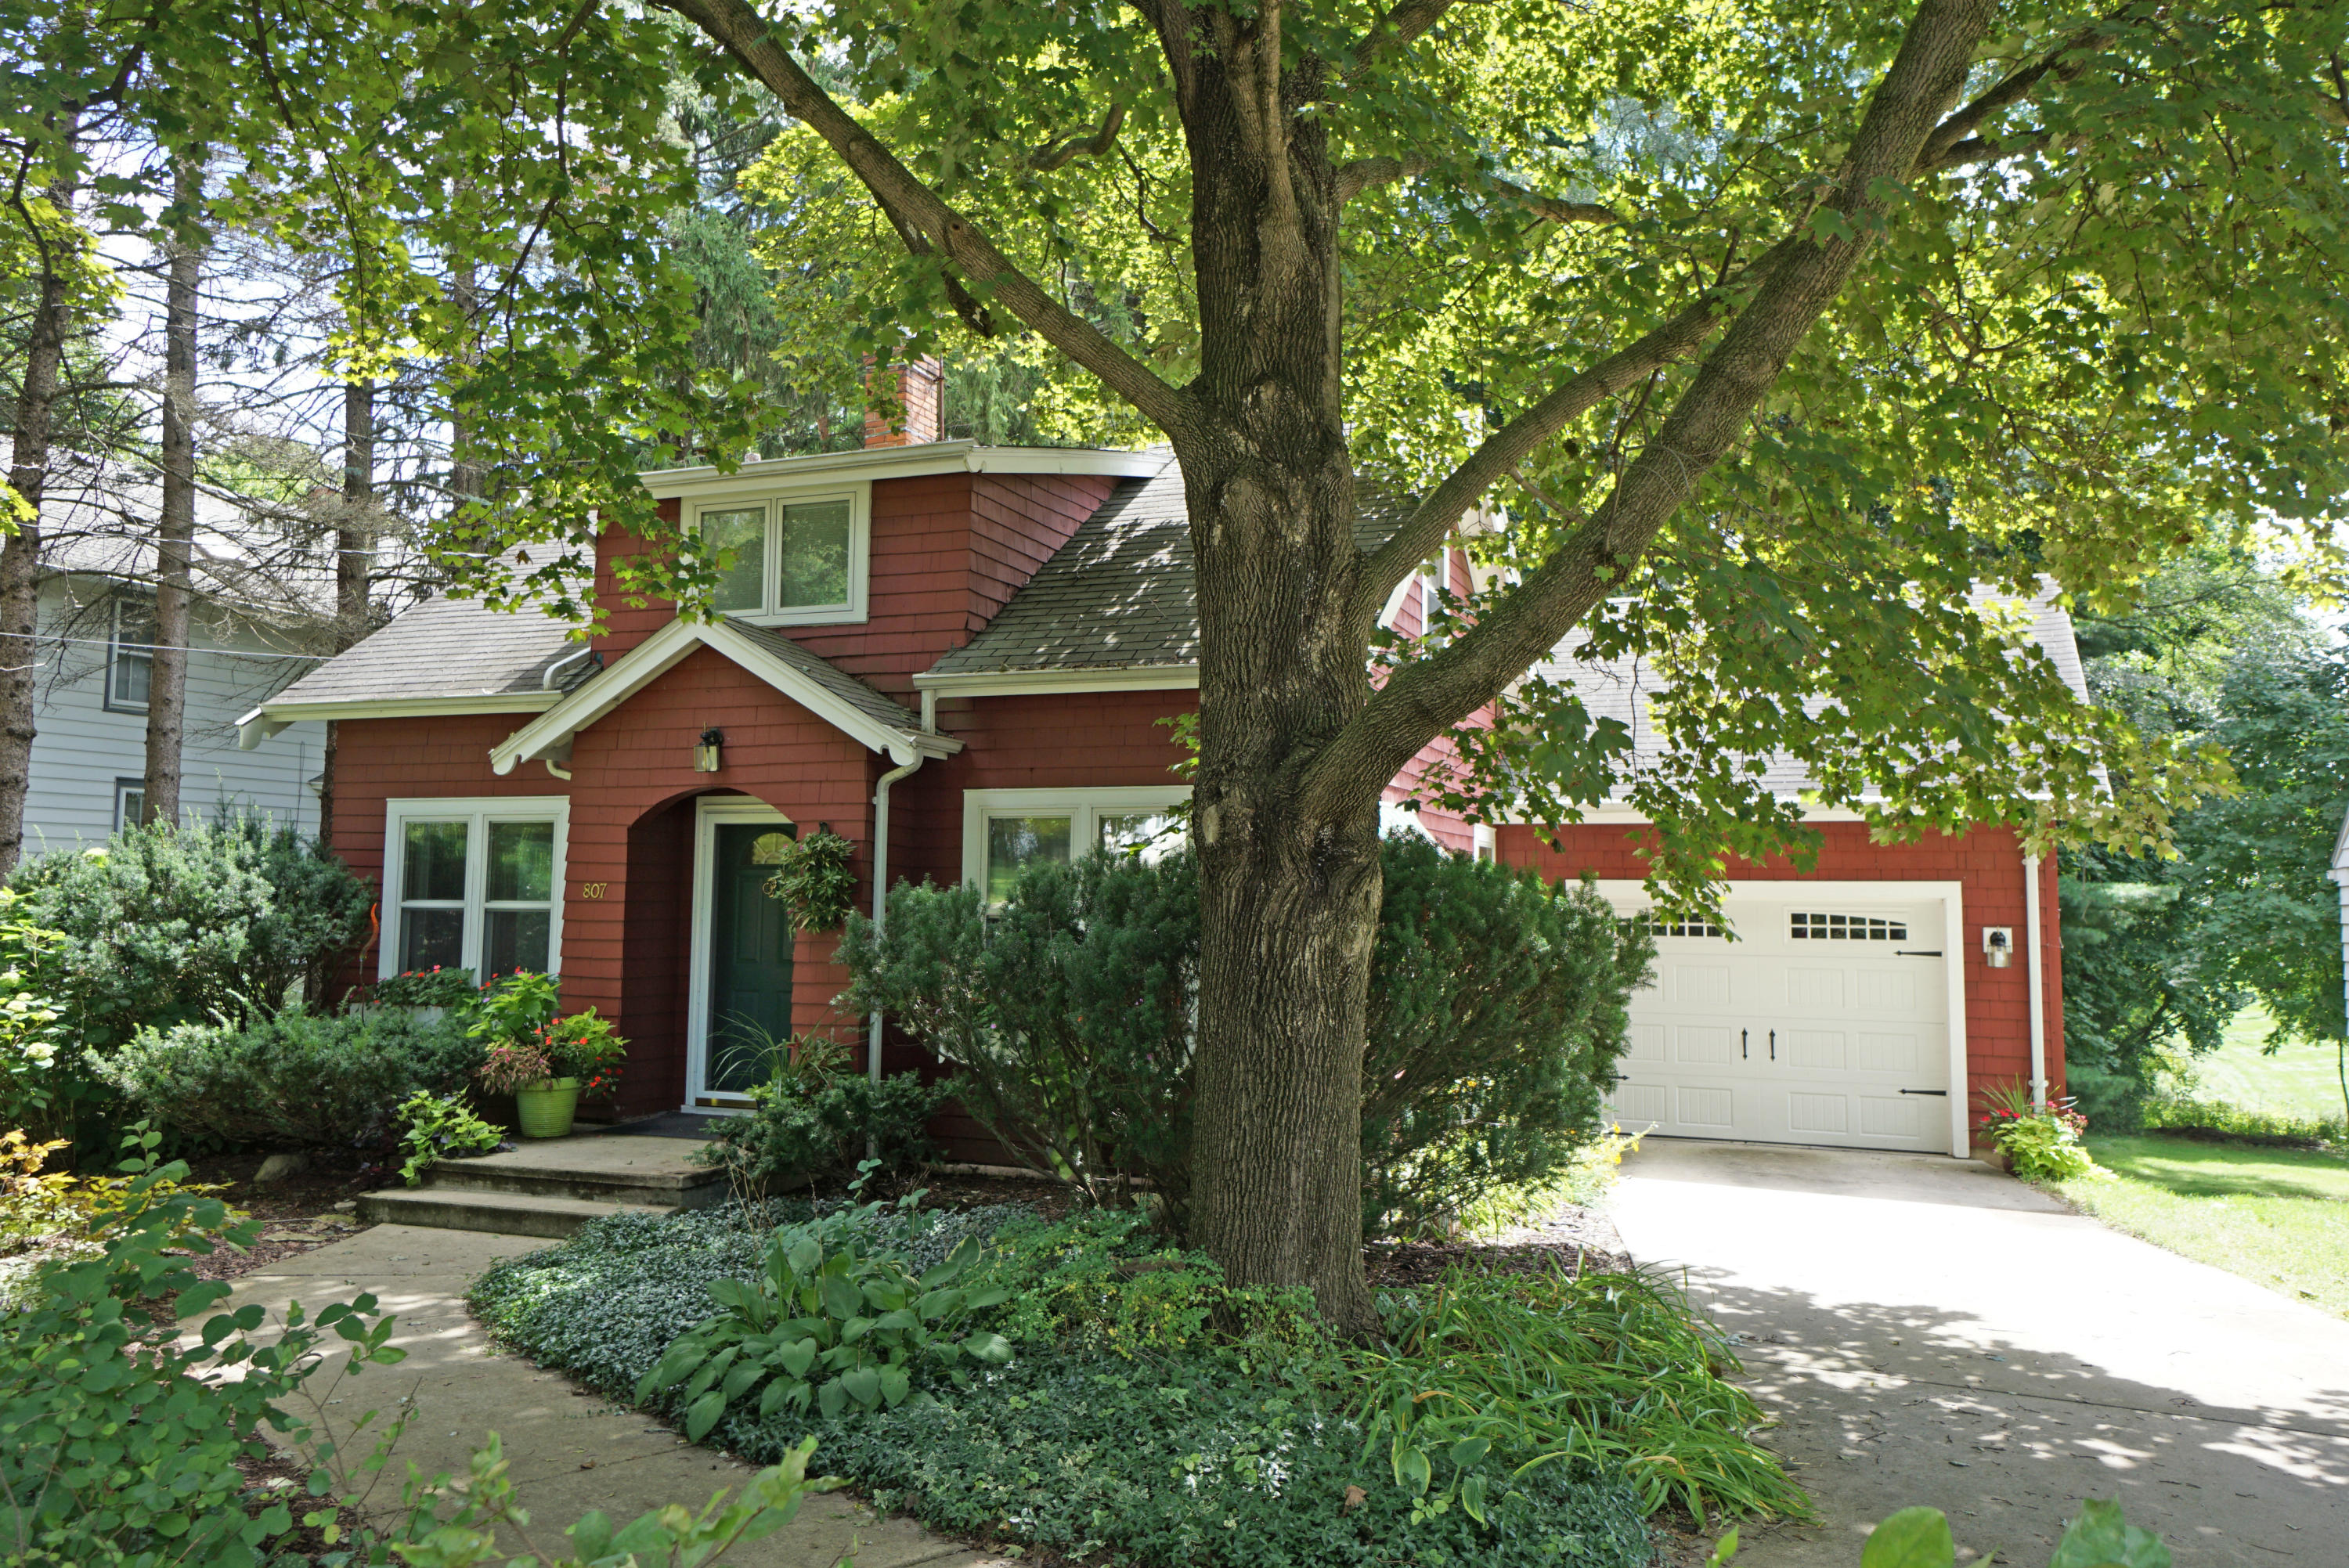 807 Capitol Dr, Hartland, Wisconsin 53029, 2 Bedrooms Bedrooms, 7 Rooms Rooms,1 BathroomBathrooms,Single-Family,For Sale,Capitol Dr,1603426